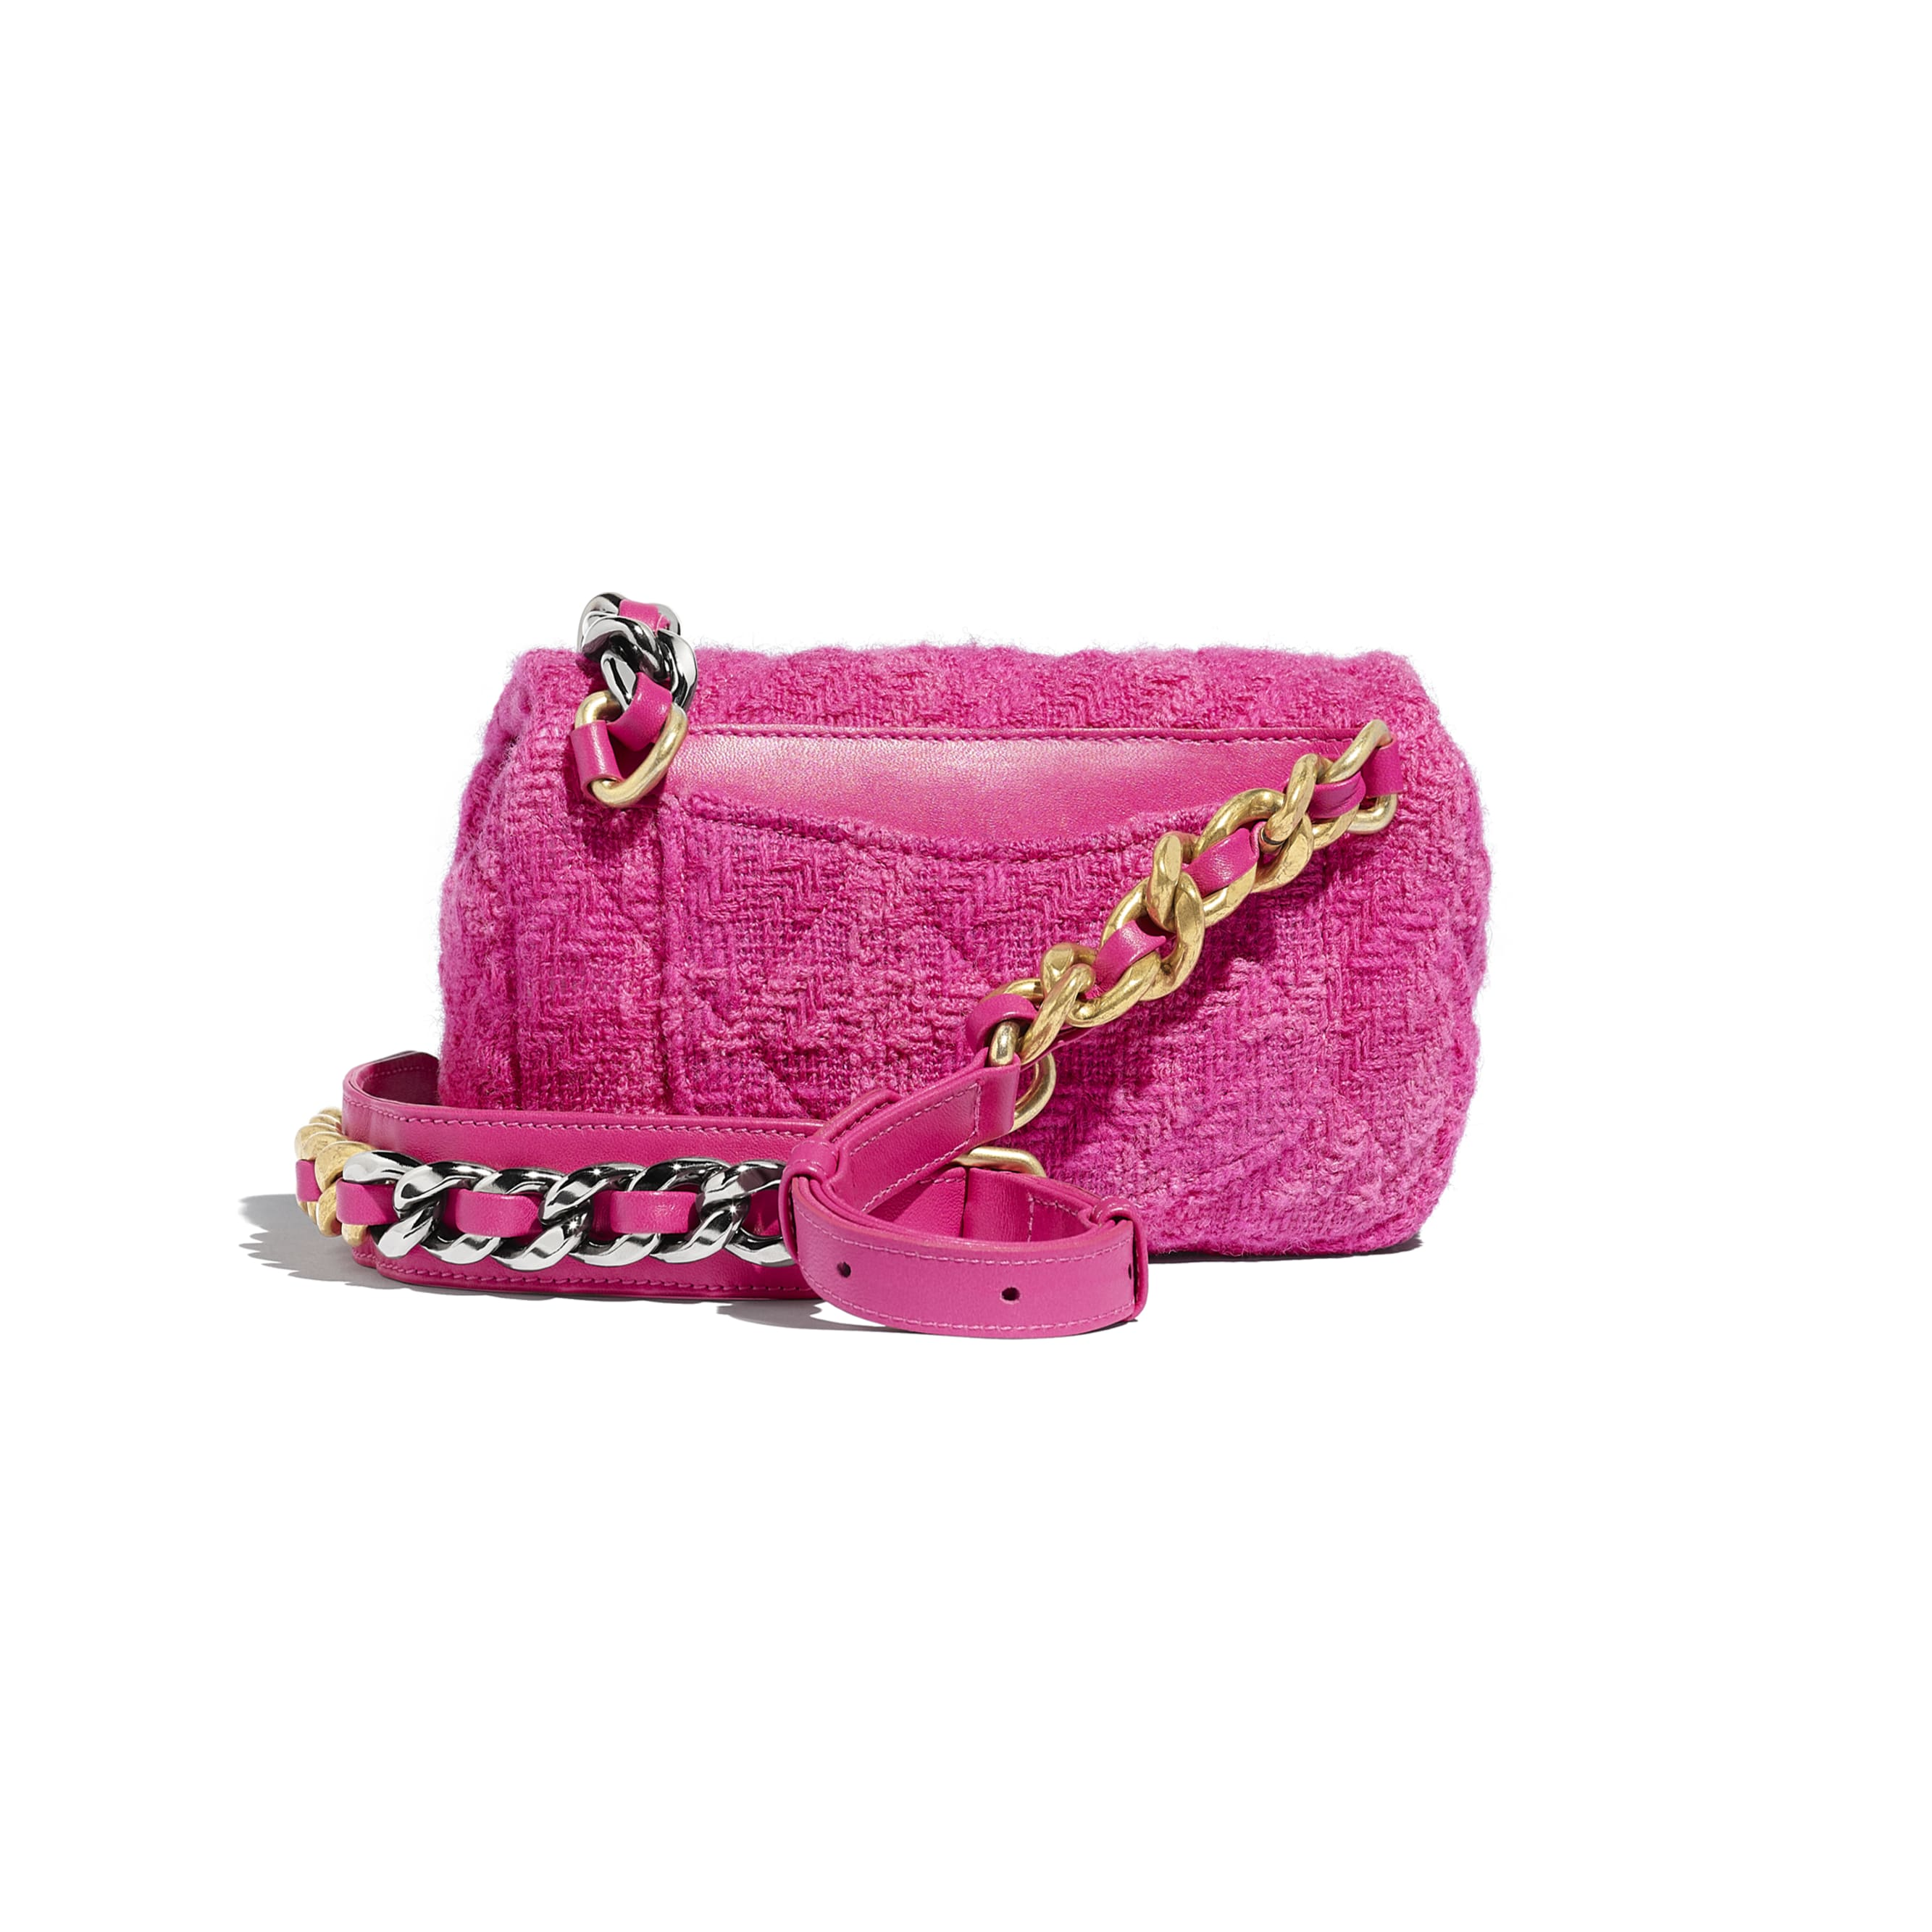 CHANEL 19 Waist Bag - Pink - Wool Tweed, Gold-Tone, Silver-Tone & Ruthenium-Finish Metal - Alternative view - see standard sized version